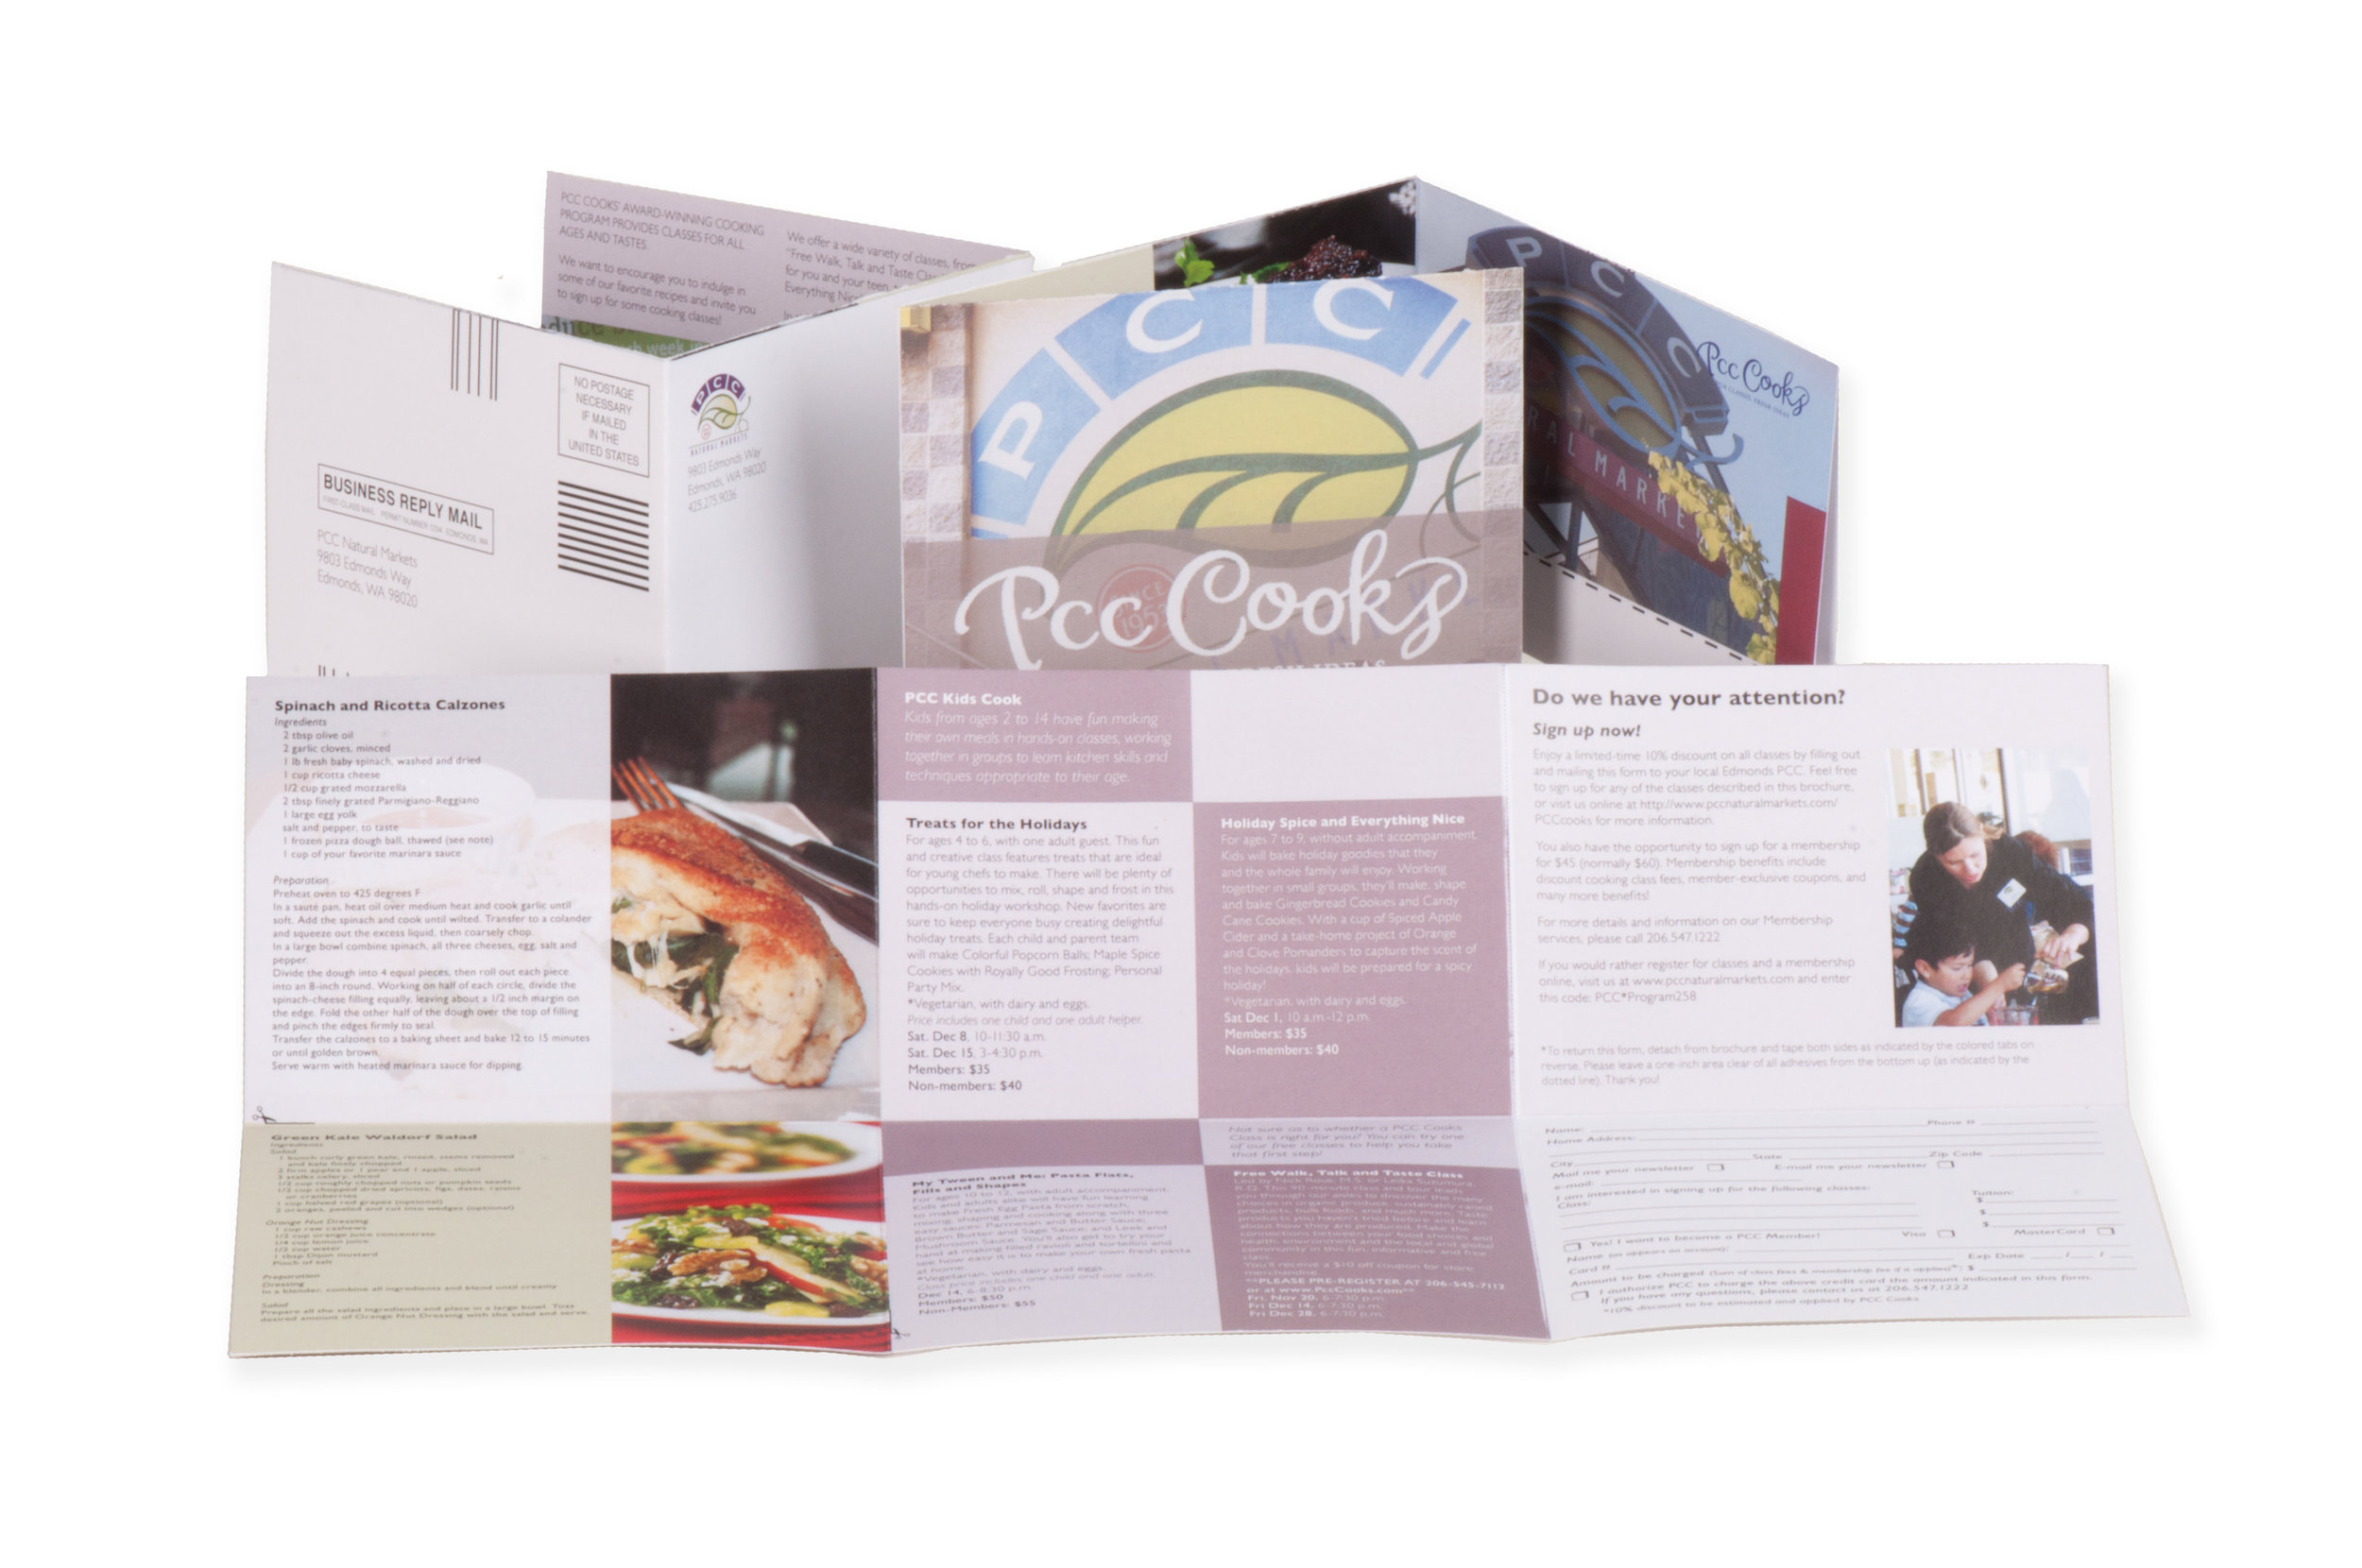 Brochures - Brochures generally require the most investment, because they incorporate photos and graphics, use heavier paper, and require folding or stapling of multiple pages. They are also the most comprehensive form of direct mailing.The colorful and attractive format of a well-designed brochure is eye catching for both new and loyal customers.Brochures can include graphics, so they can illustrate relevant statistics or diagrams.The content of a brochure can be more thorough. Different concepts can be introduced in one mailing, and each one can include sufficient details.A brochure's variable length and format makes it a versatile tool for various marketing tasks.